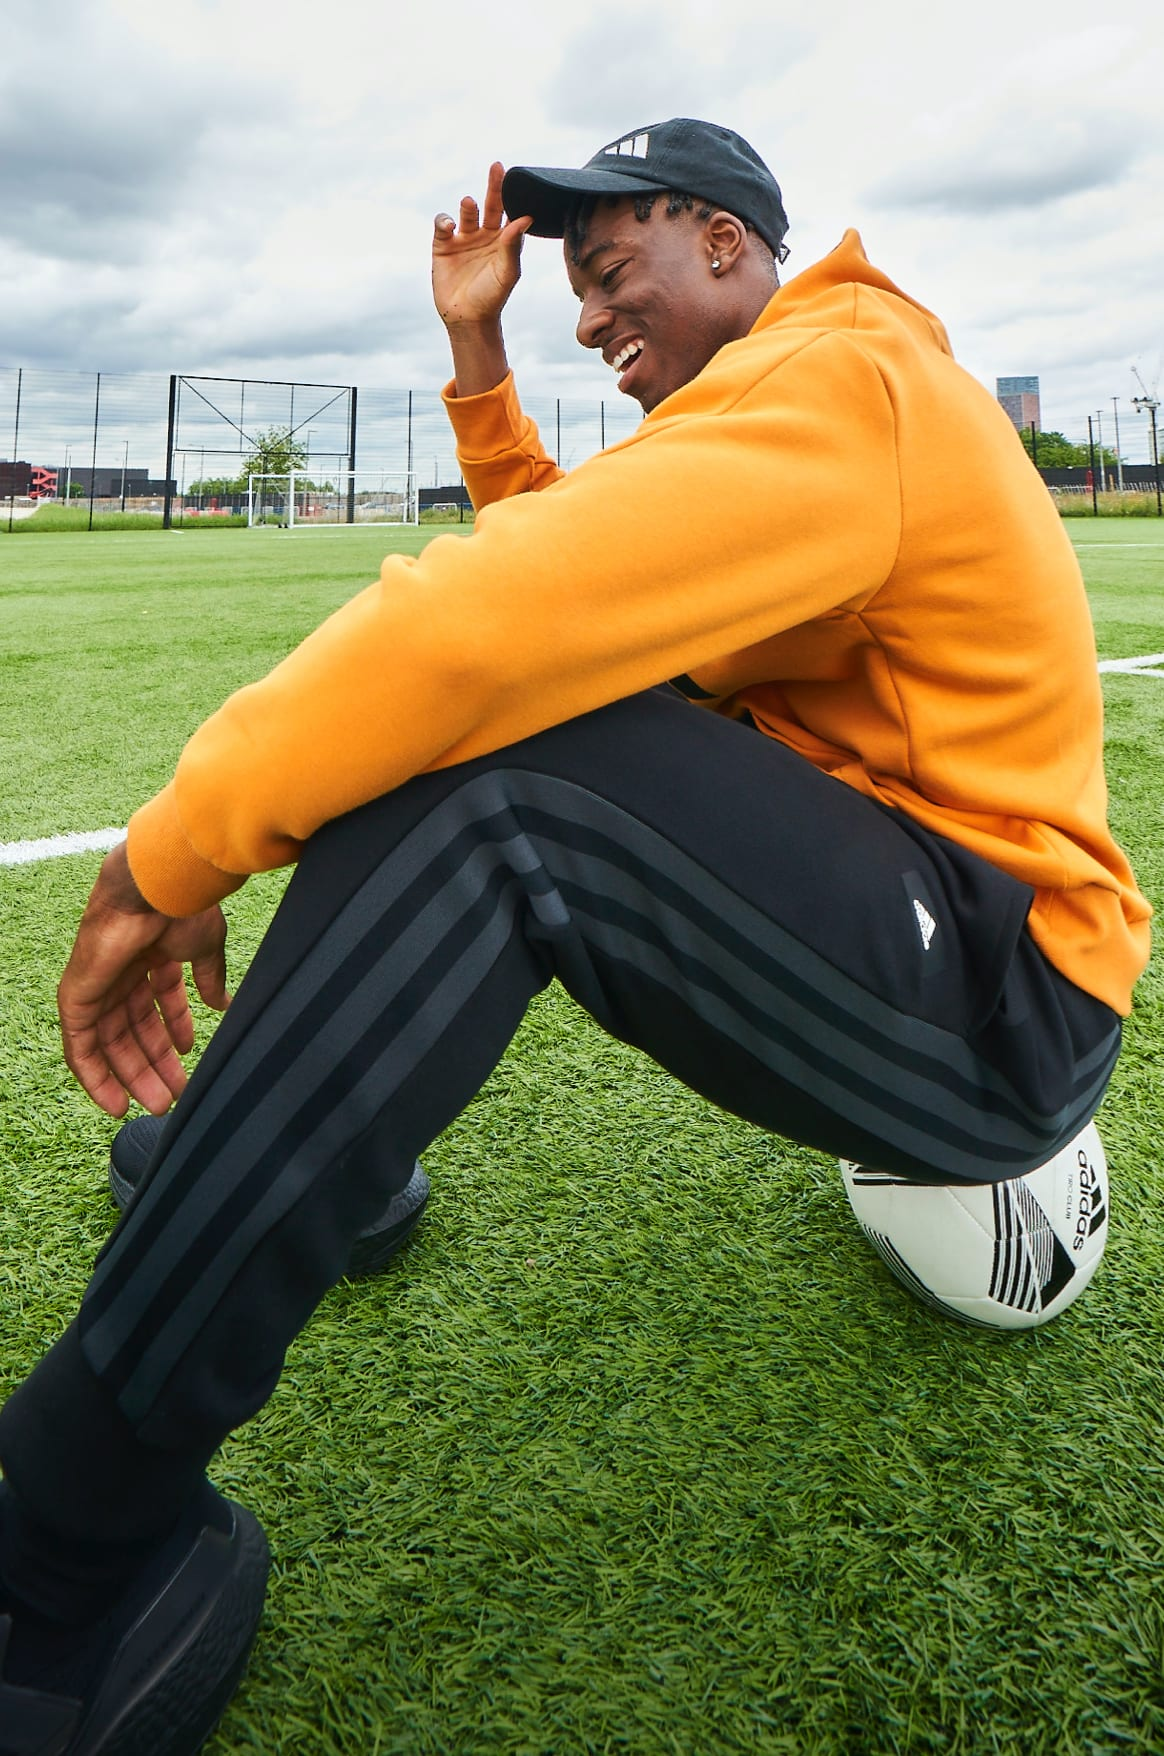 English football player Noni Madueke sits on a football pitch in adidas clothing, smiling as he adjusts his cap.